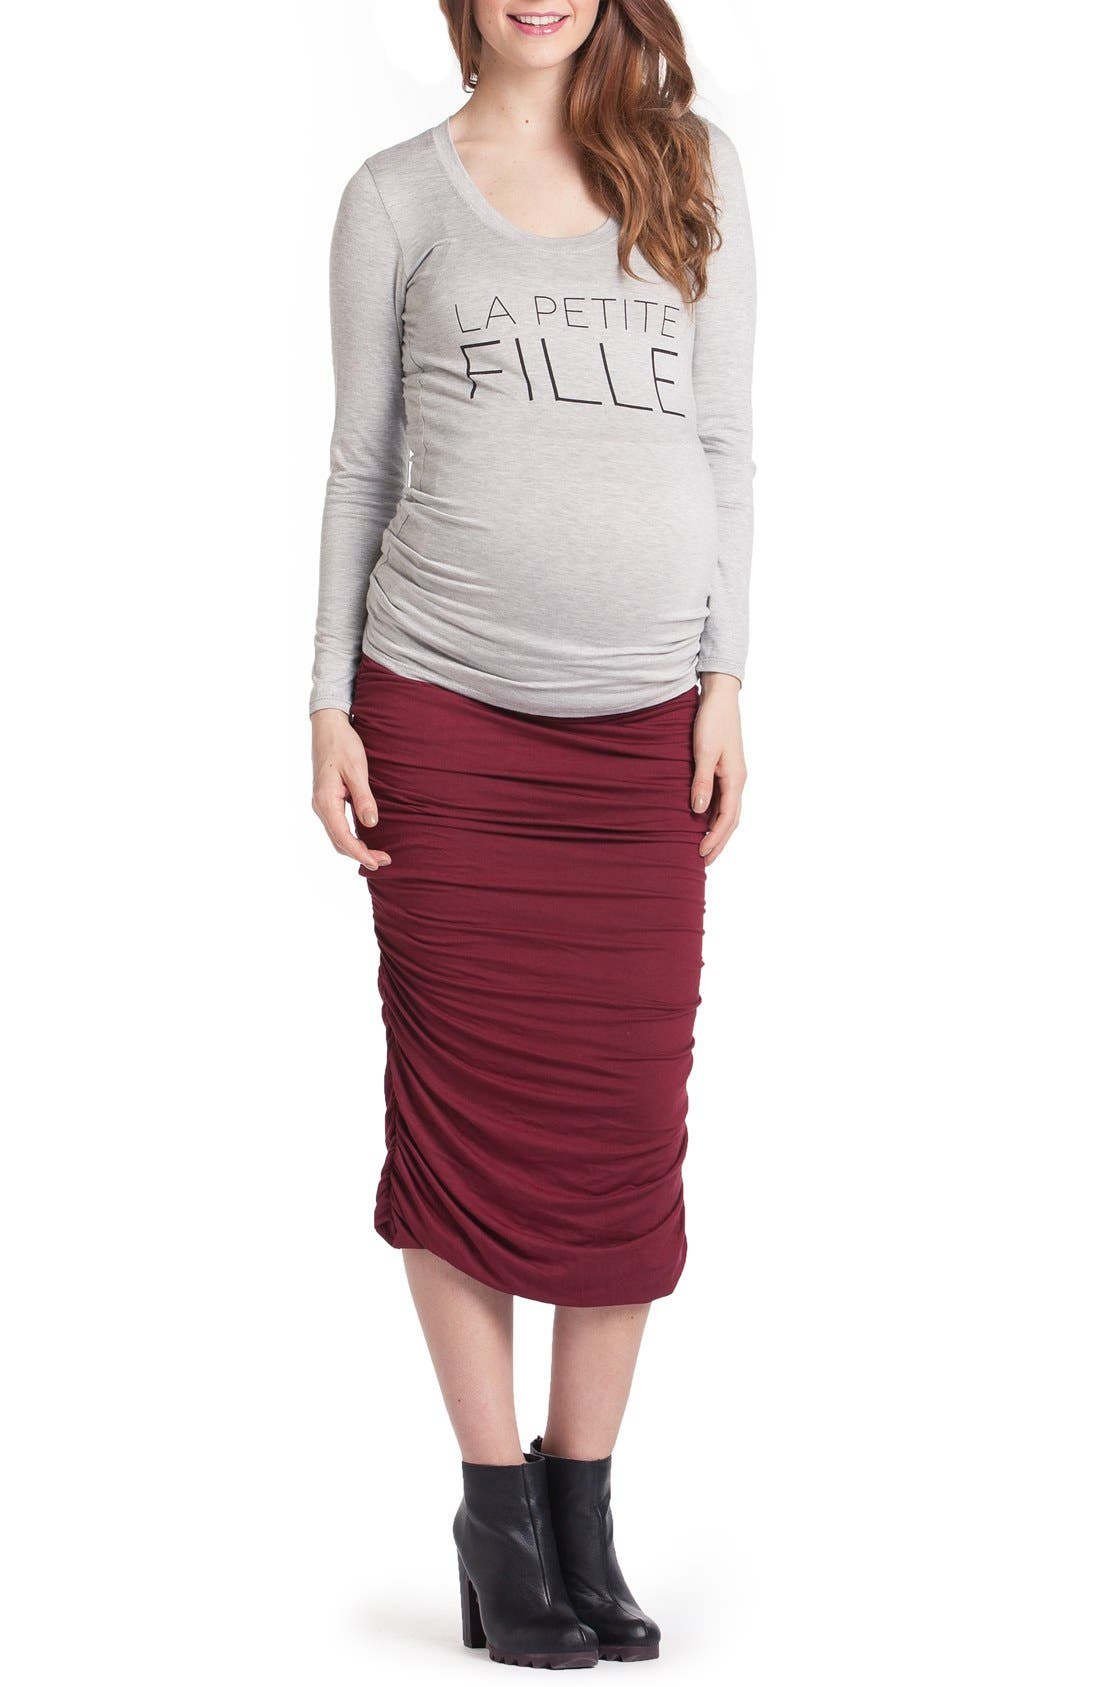 LILAC CLOTHING Frenchie - Mom To Be Maternity